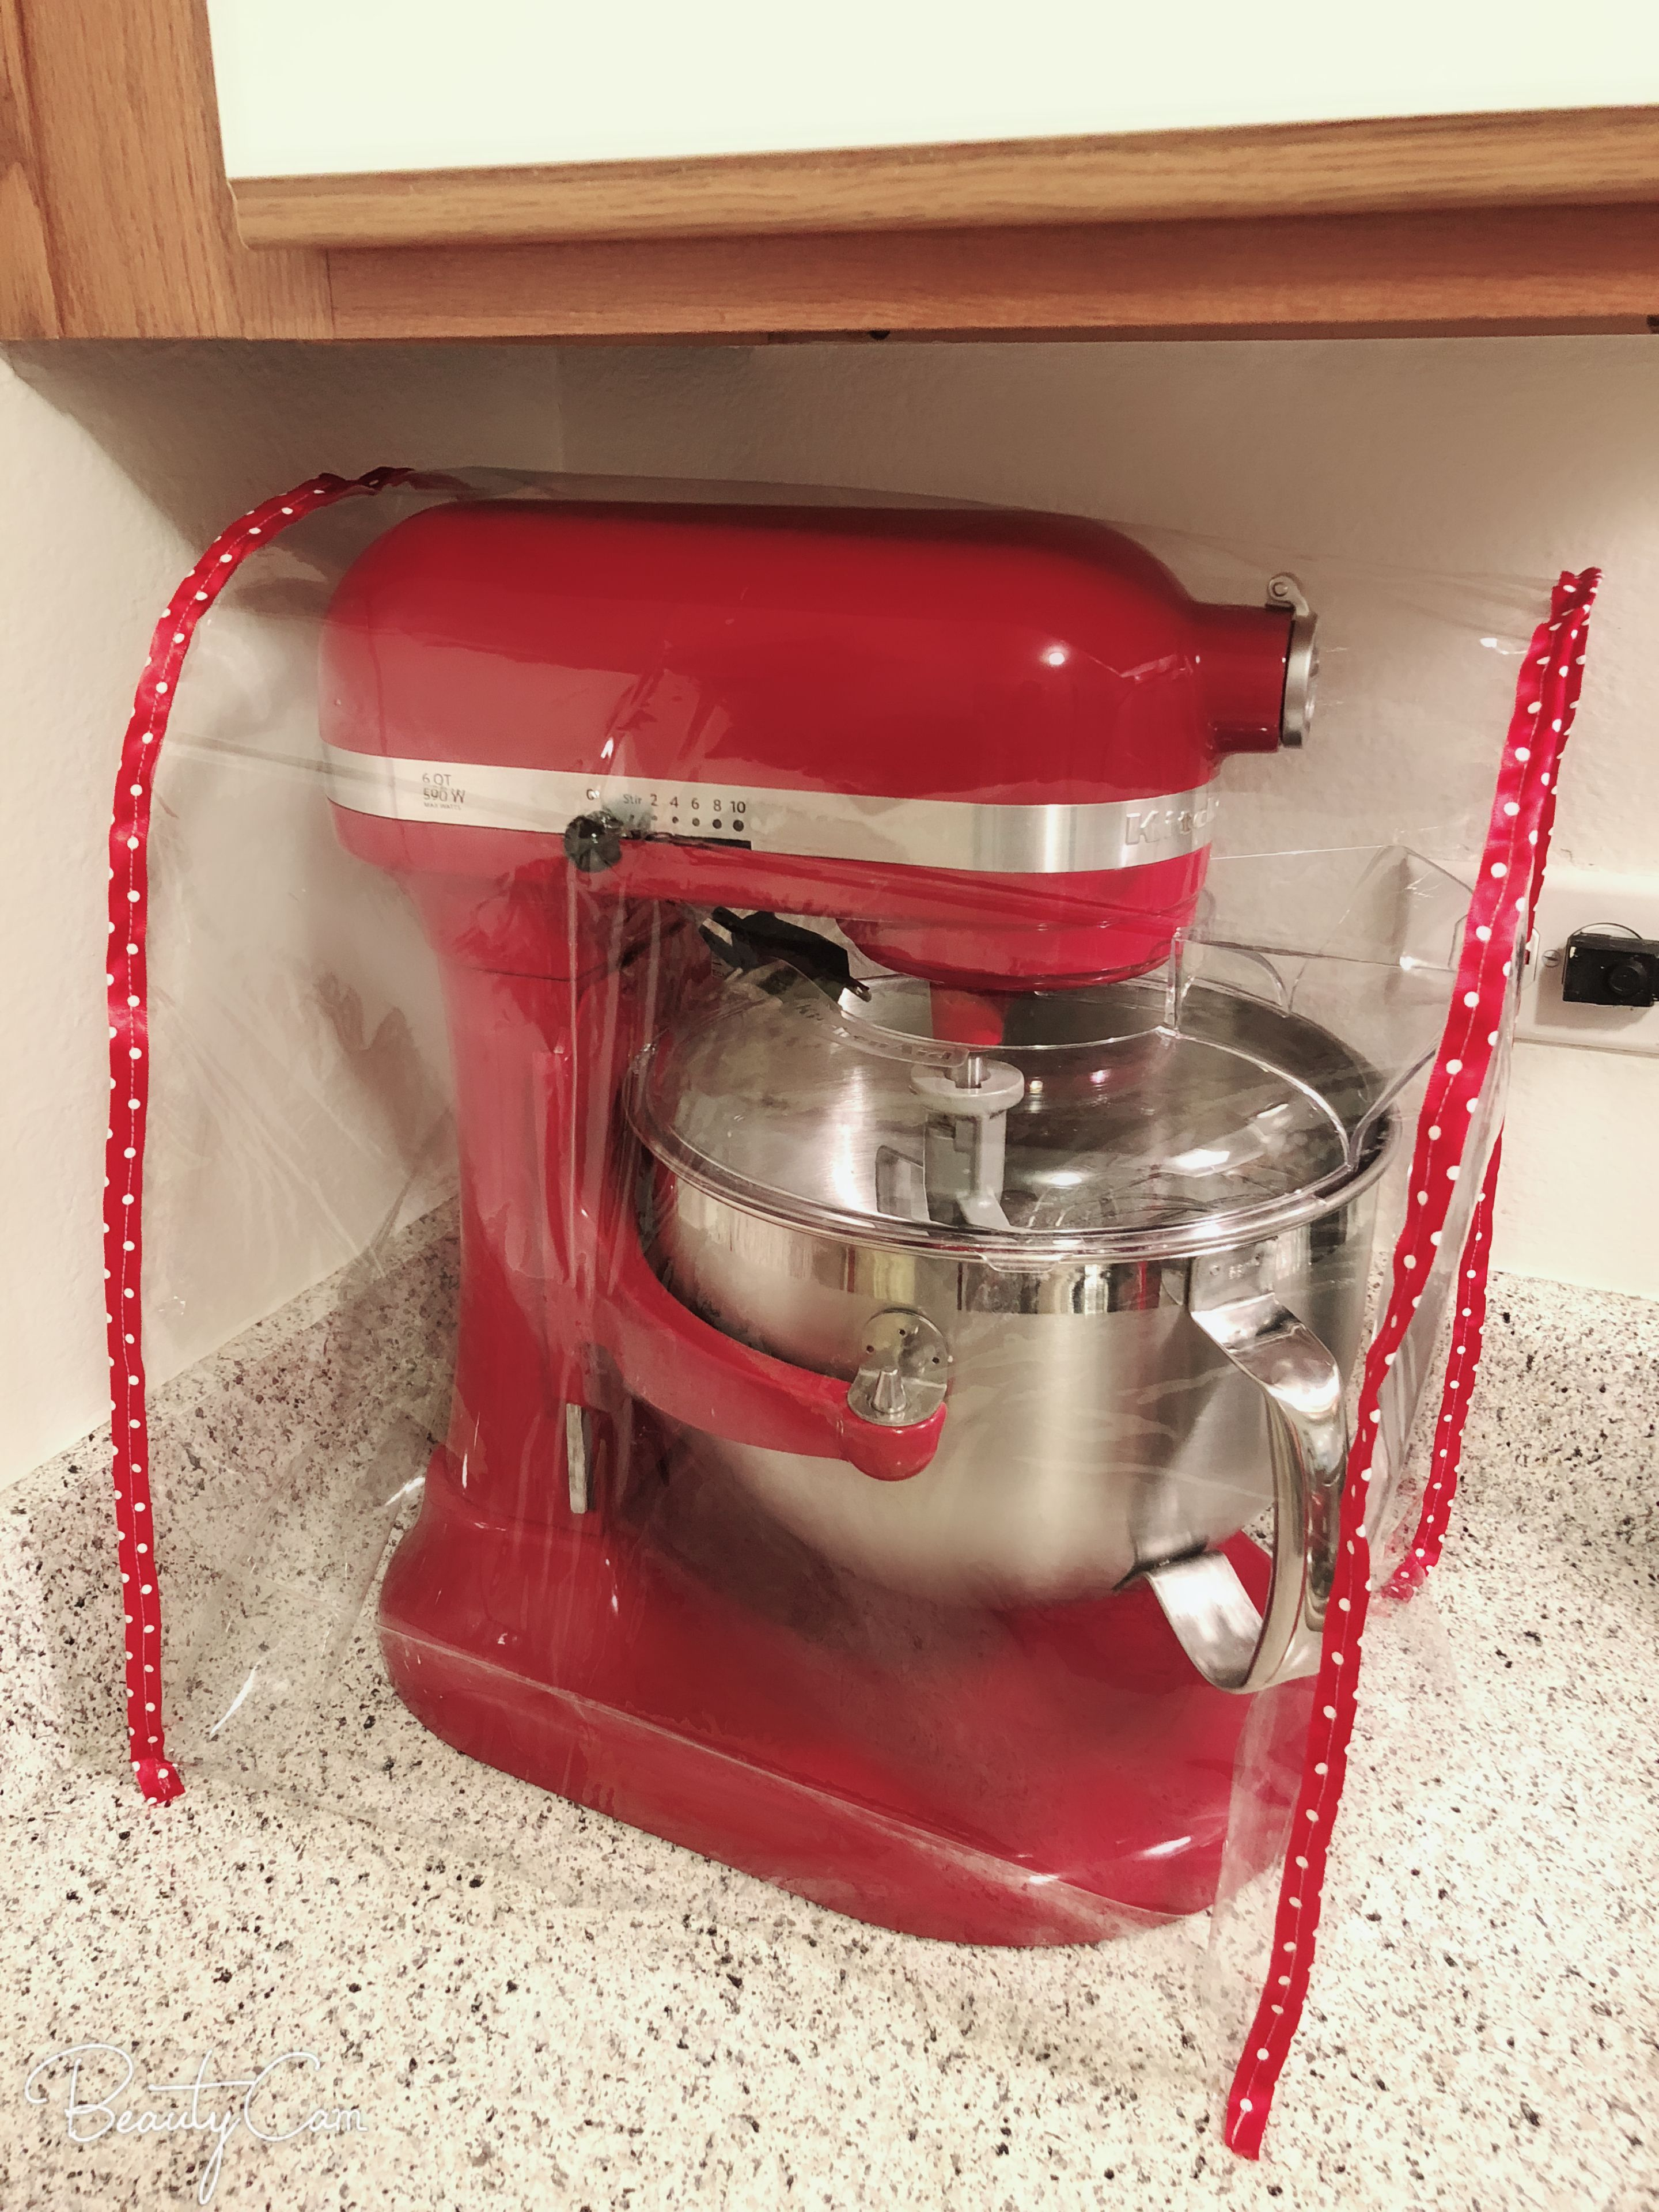 Cover for my kitchen aid stand mixer 6 qt handmade